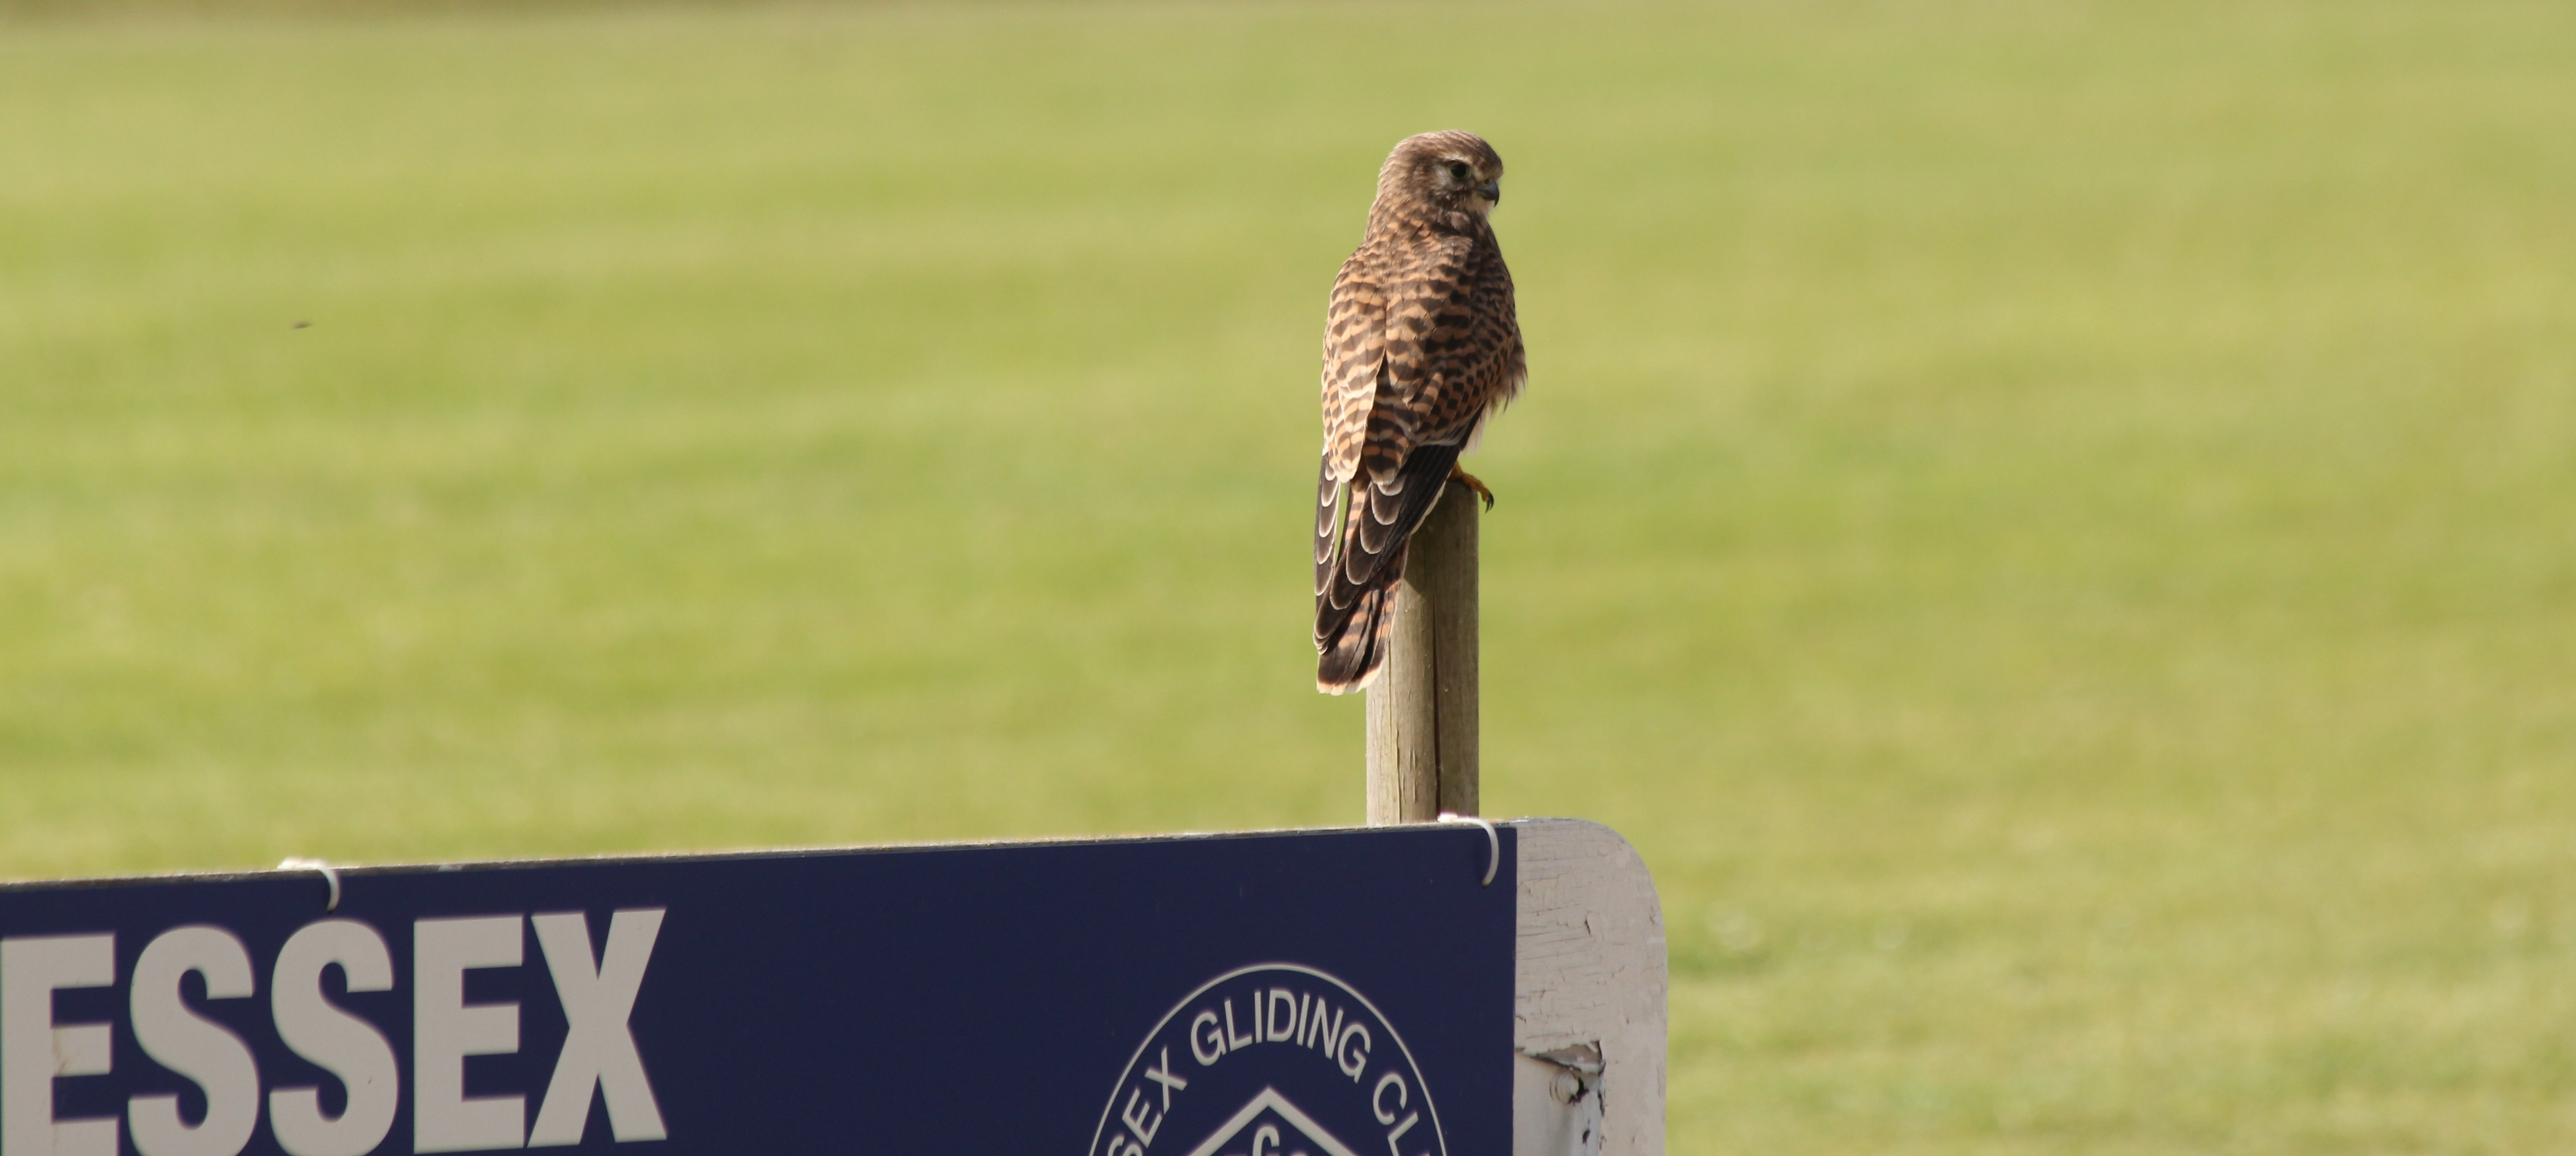 Kestrel on airfield sign